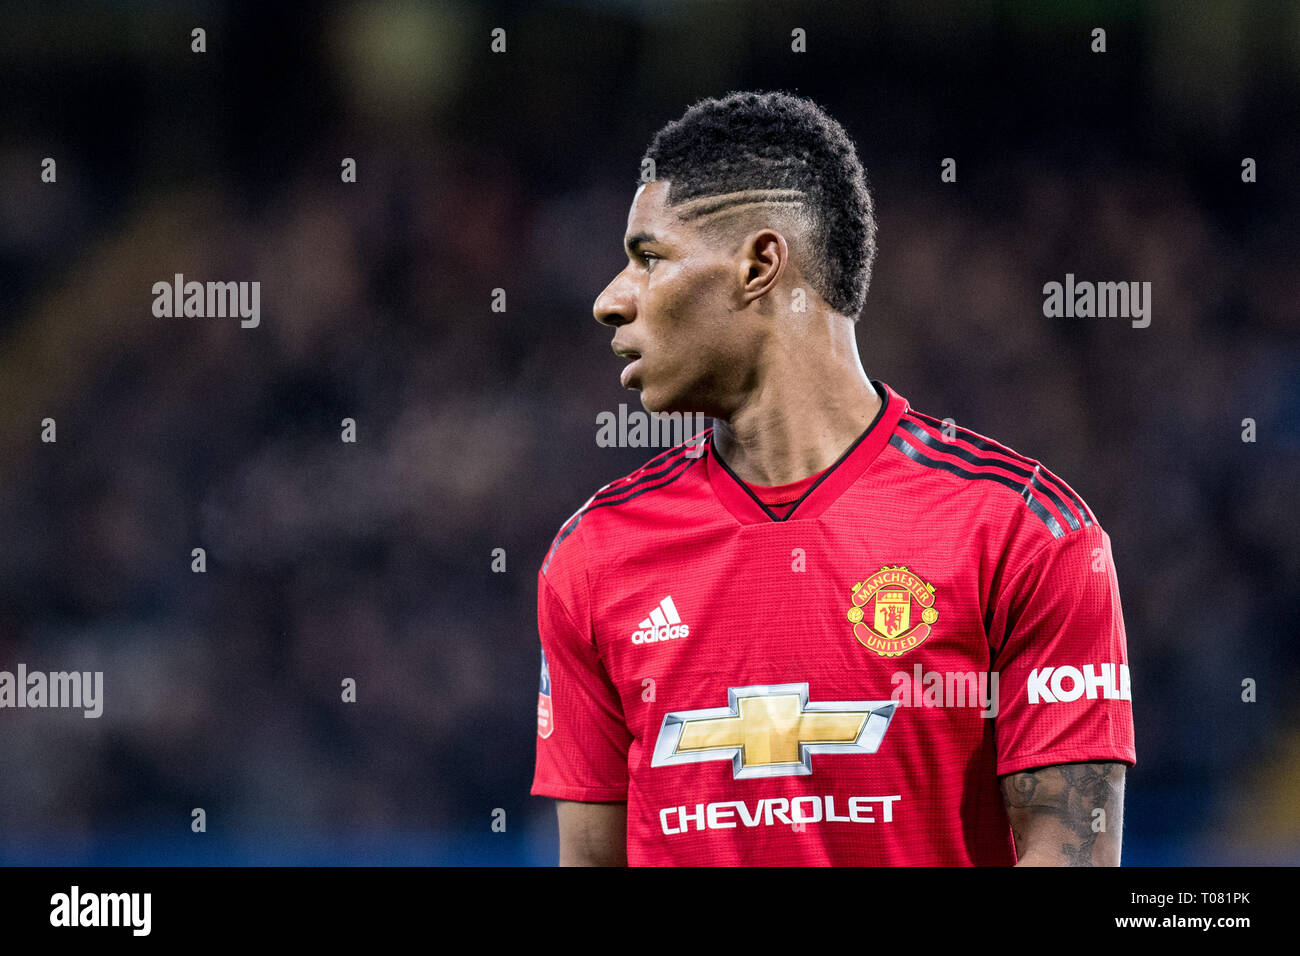 London England February 18 Marcus Rashford Of Manchester United Looks On During The Fa Cup Fifth